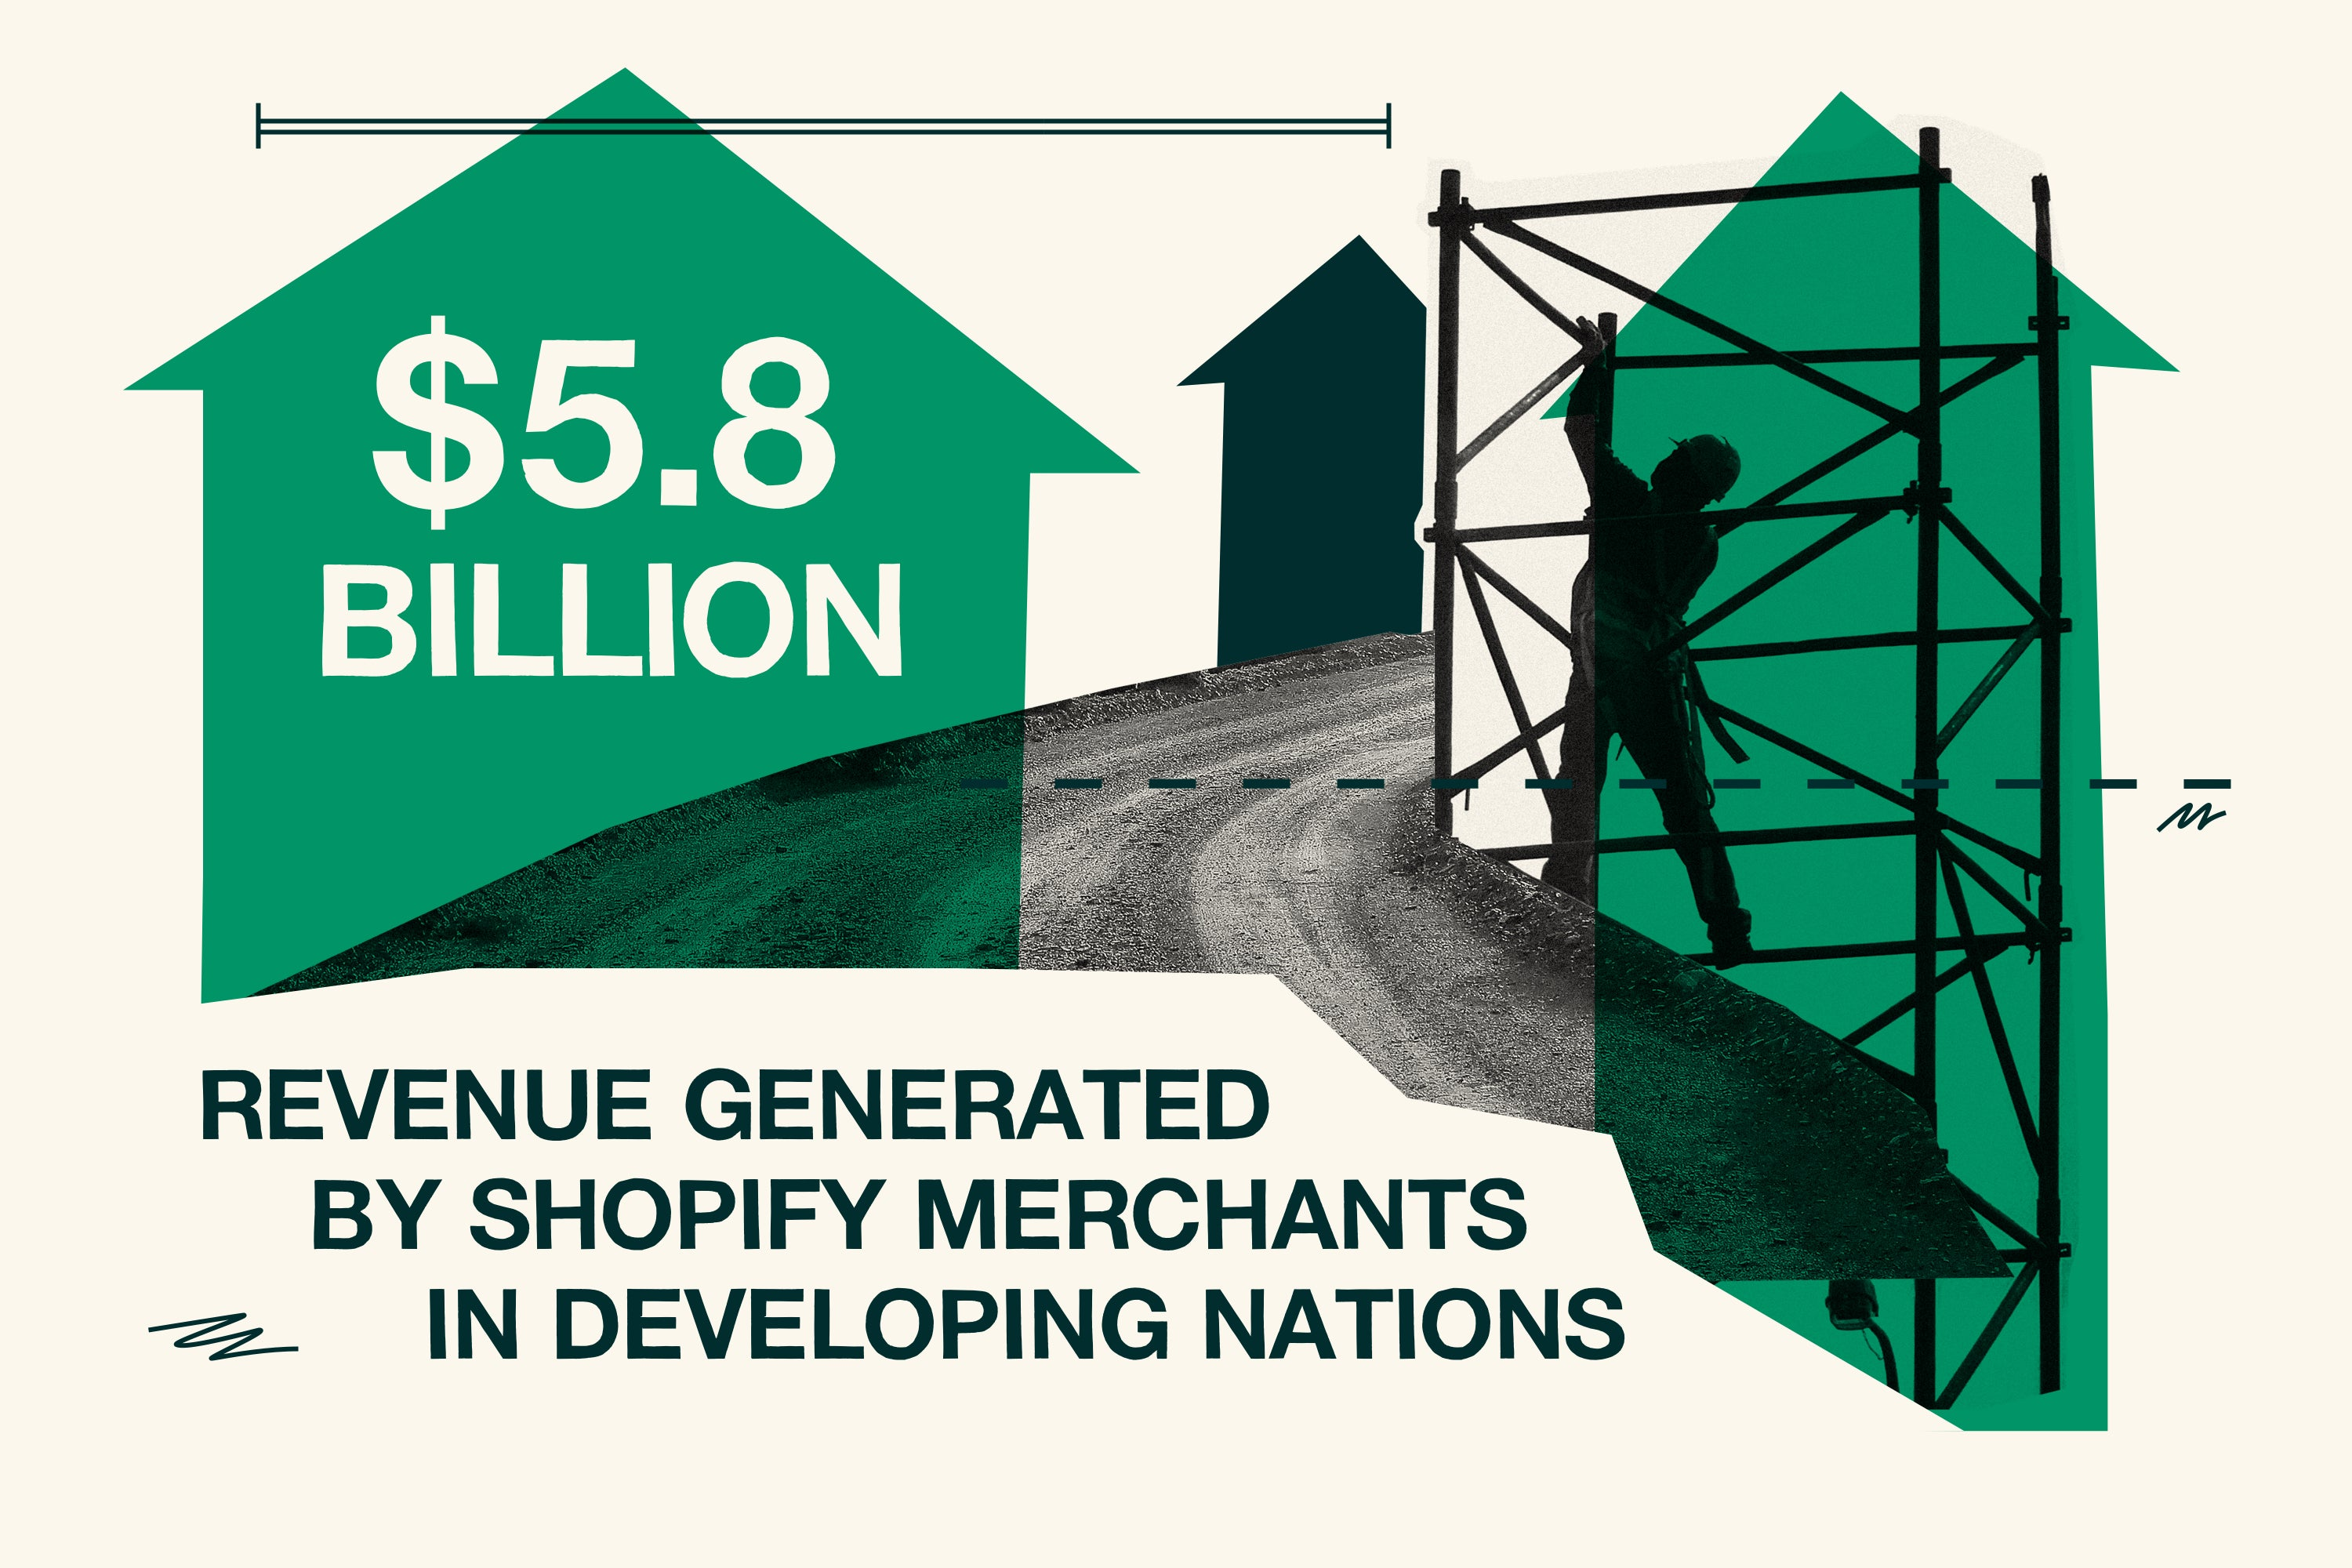 $5.8 billion revenue generated by Shopify merchants in developing nations